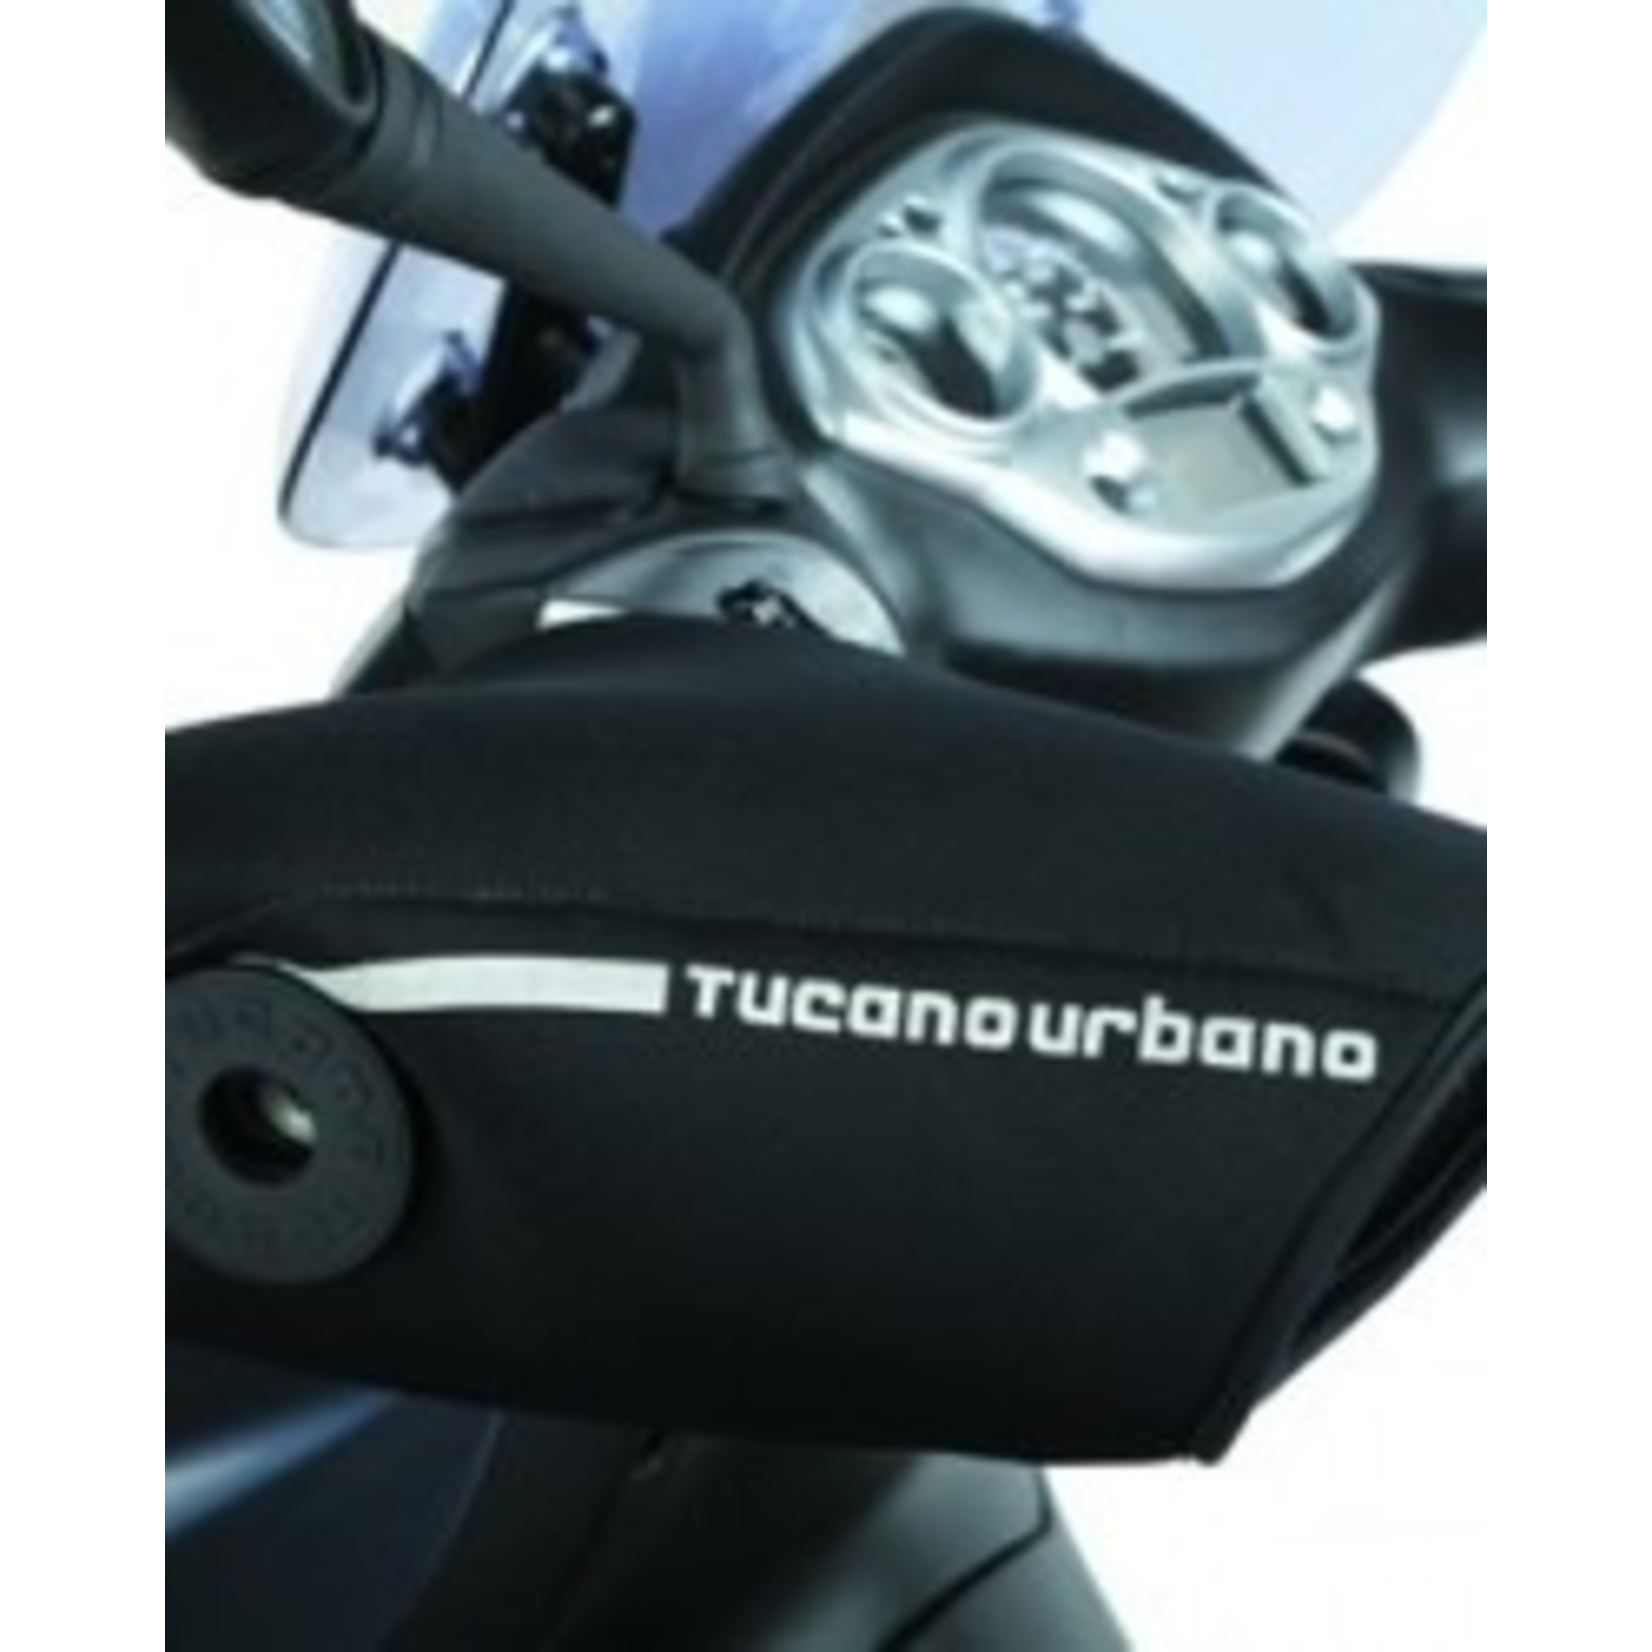 Accessories Hand Grip Cover, Tucano Urbano Universal Black (with bar ends)